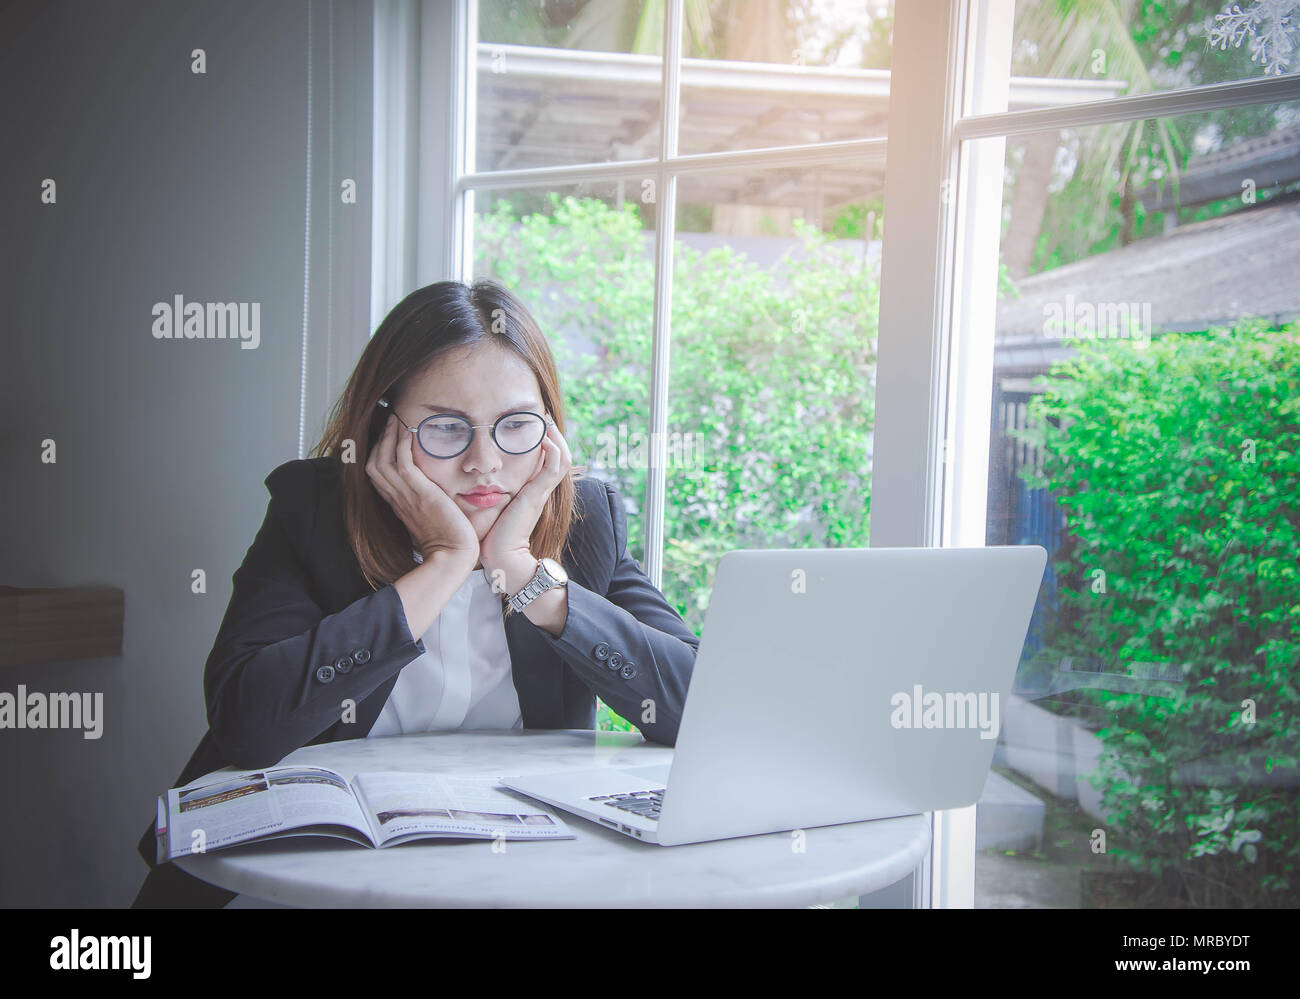 working woman , young business woman asian style busy and Stressful job There are problems in the work not thought out, resulting in unsuccessful work - Stock Image